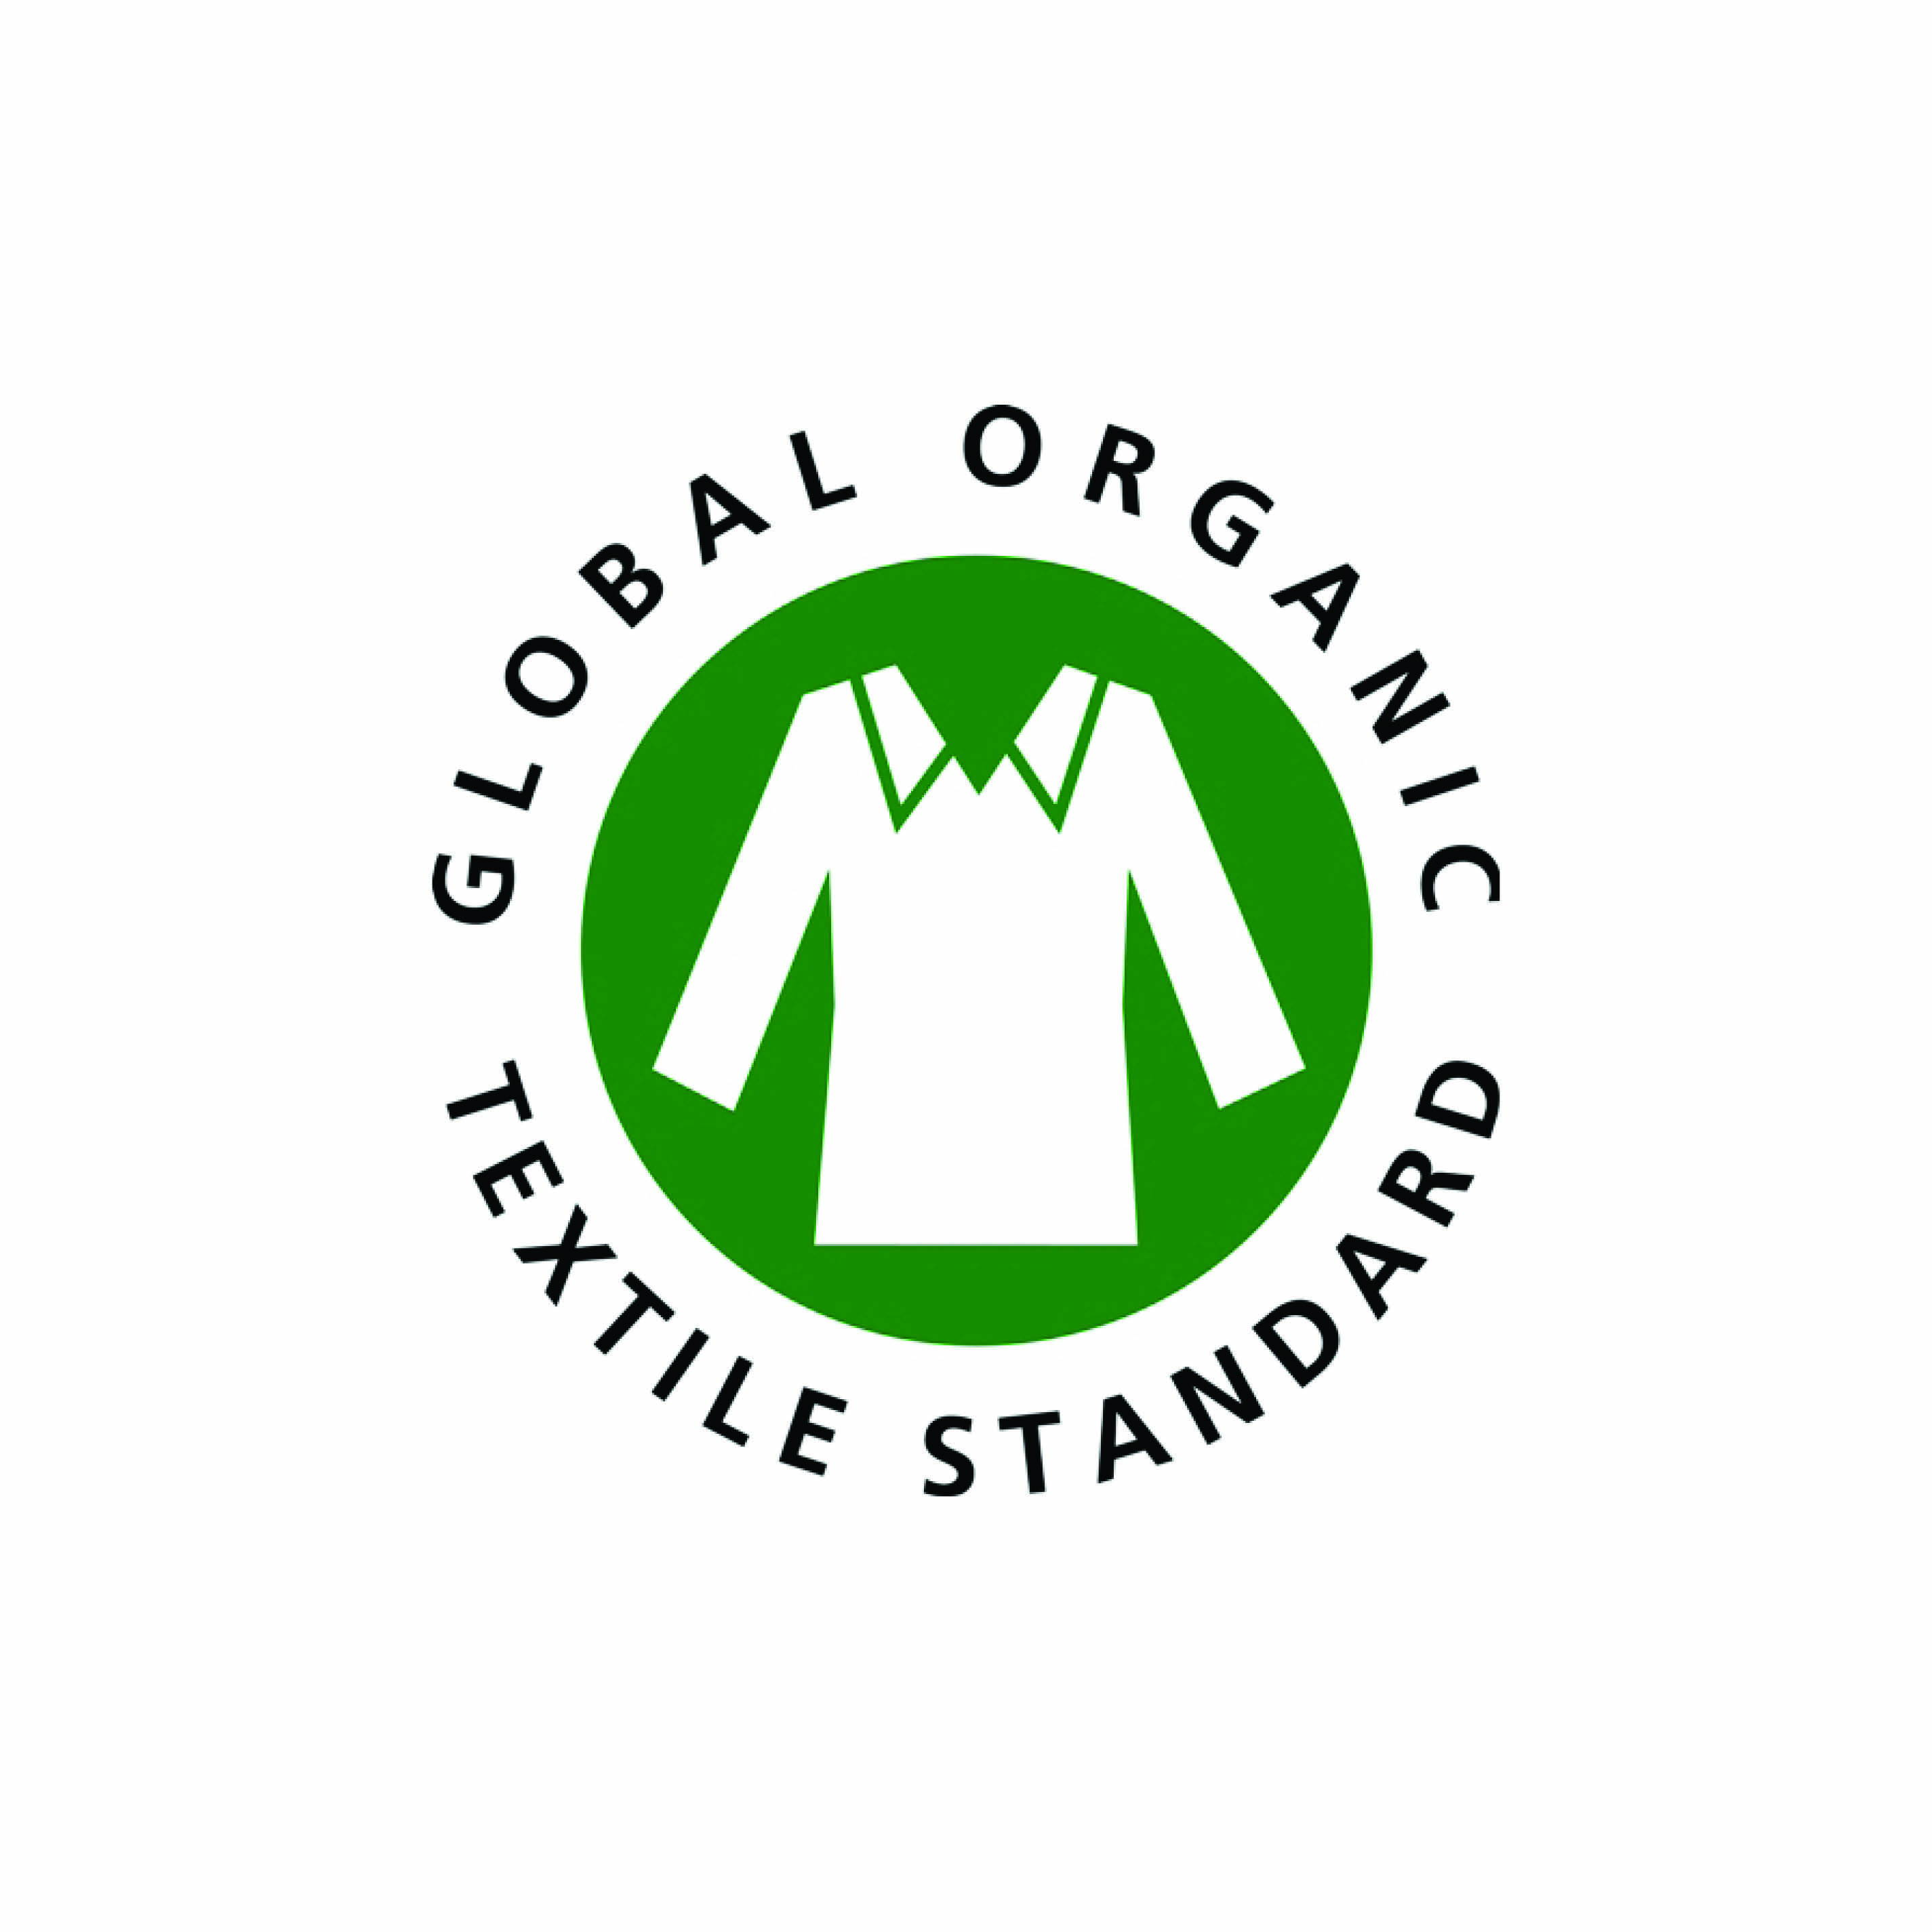 Global organic standards icon. Graphic